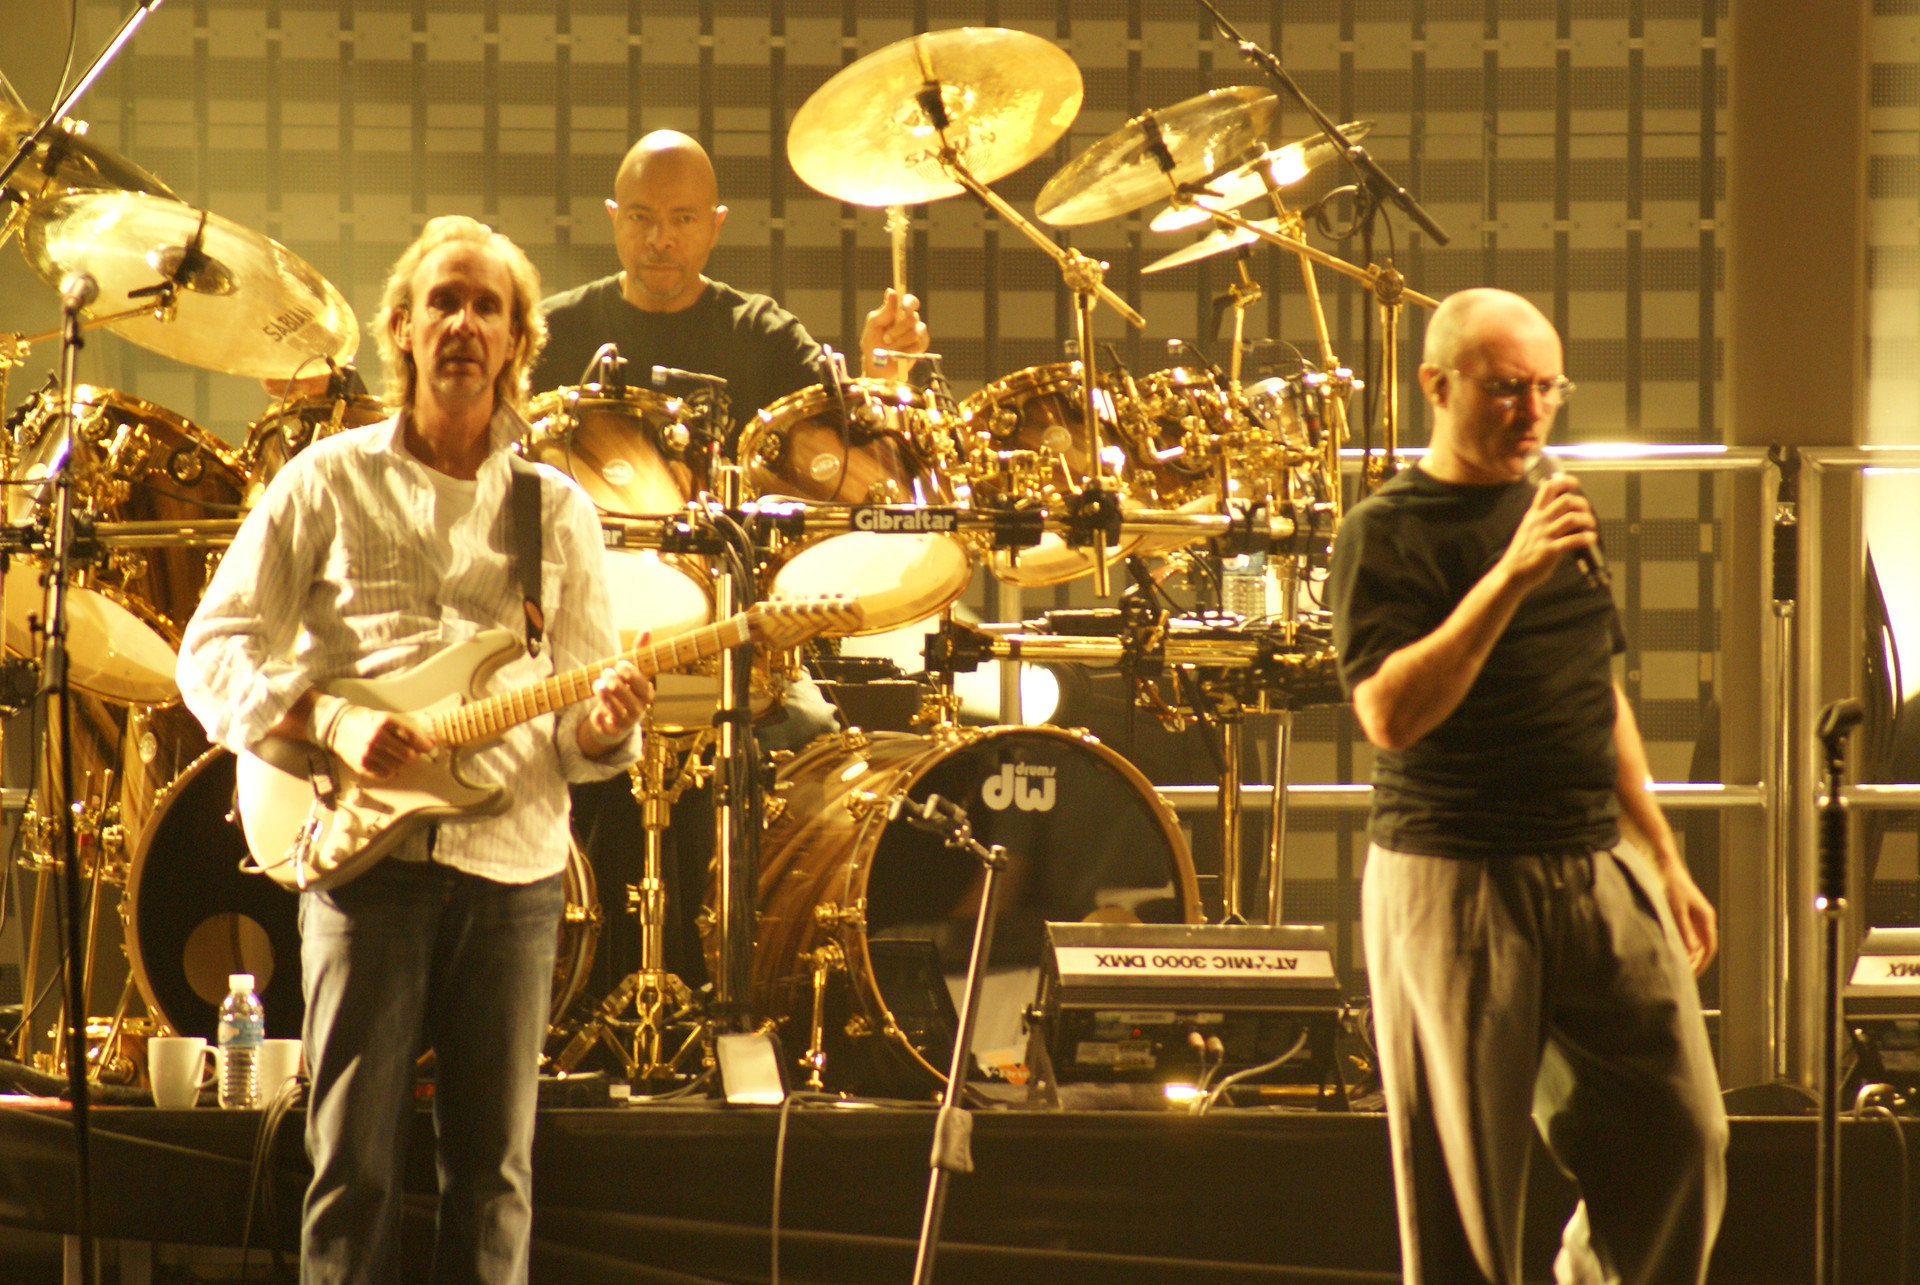 GENESIS - TURN IT ON AGAIN - 2007